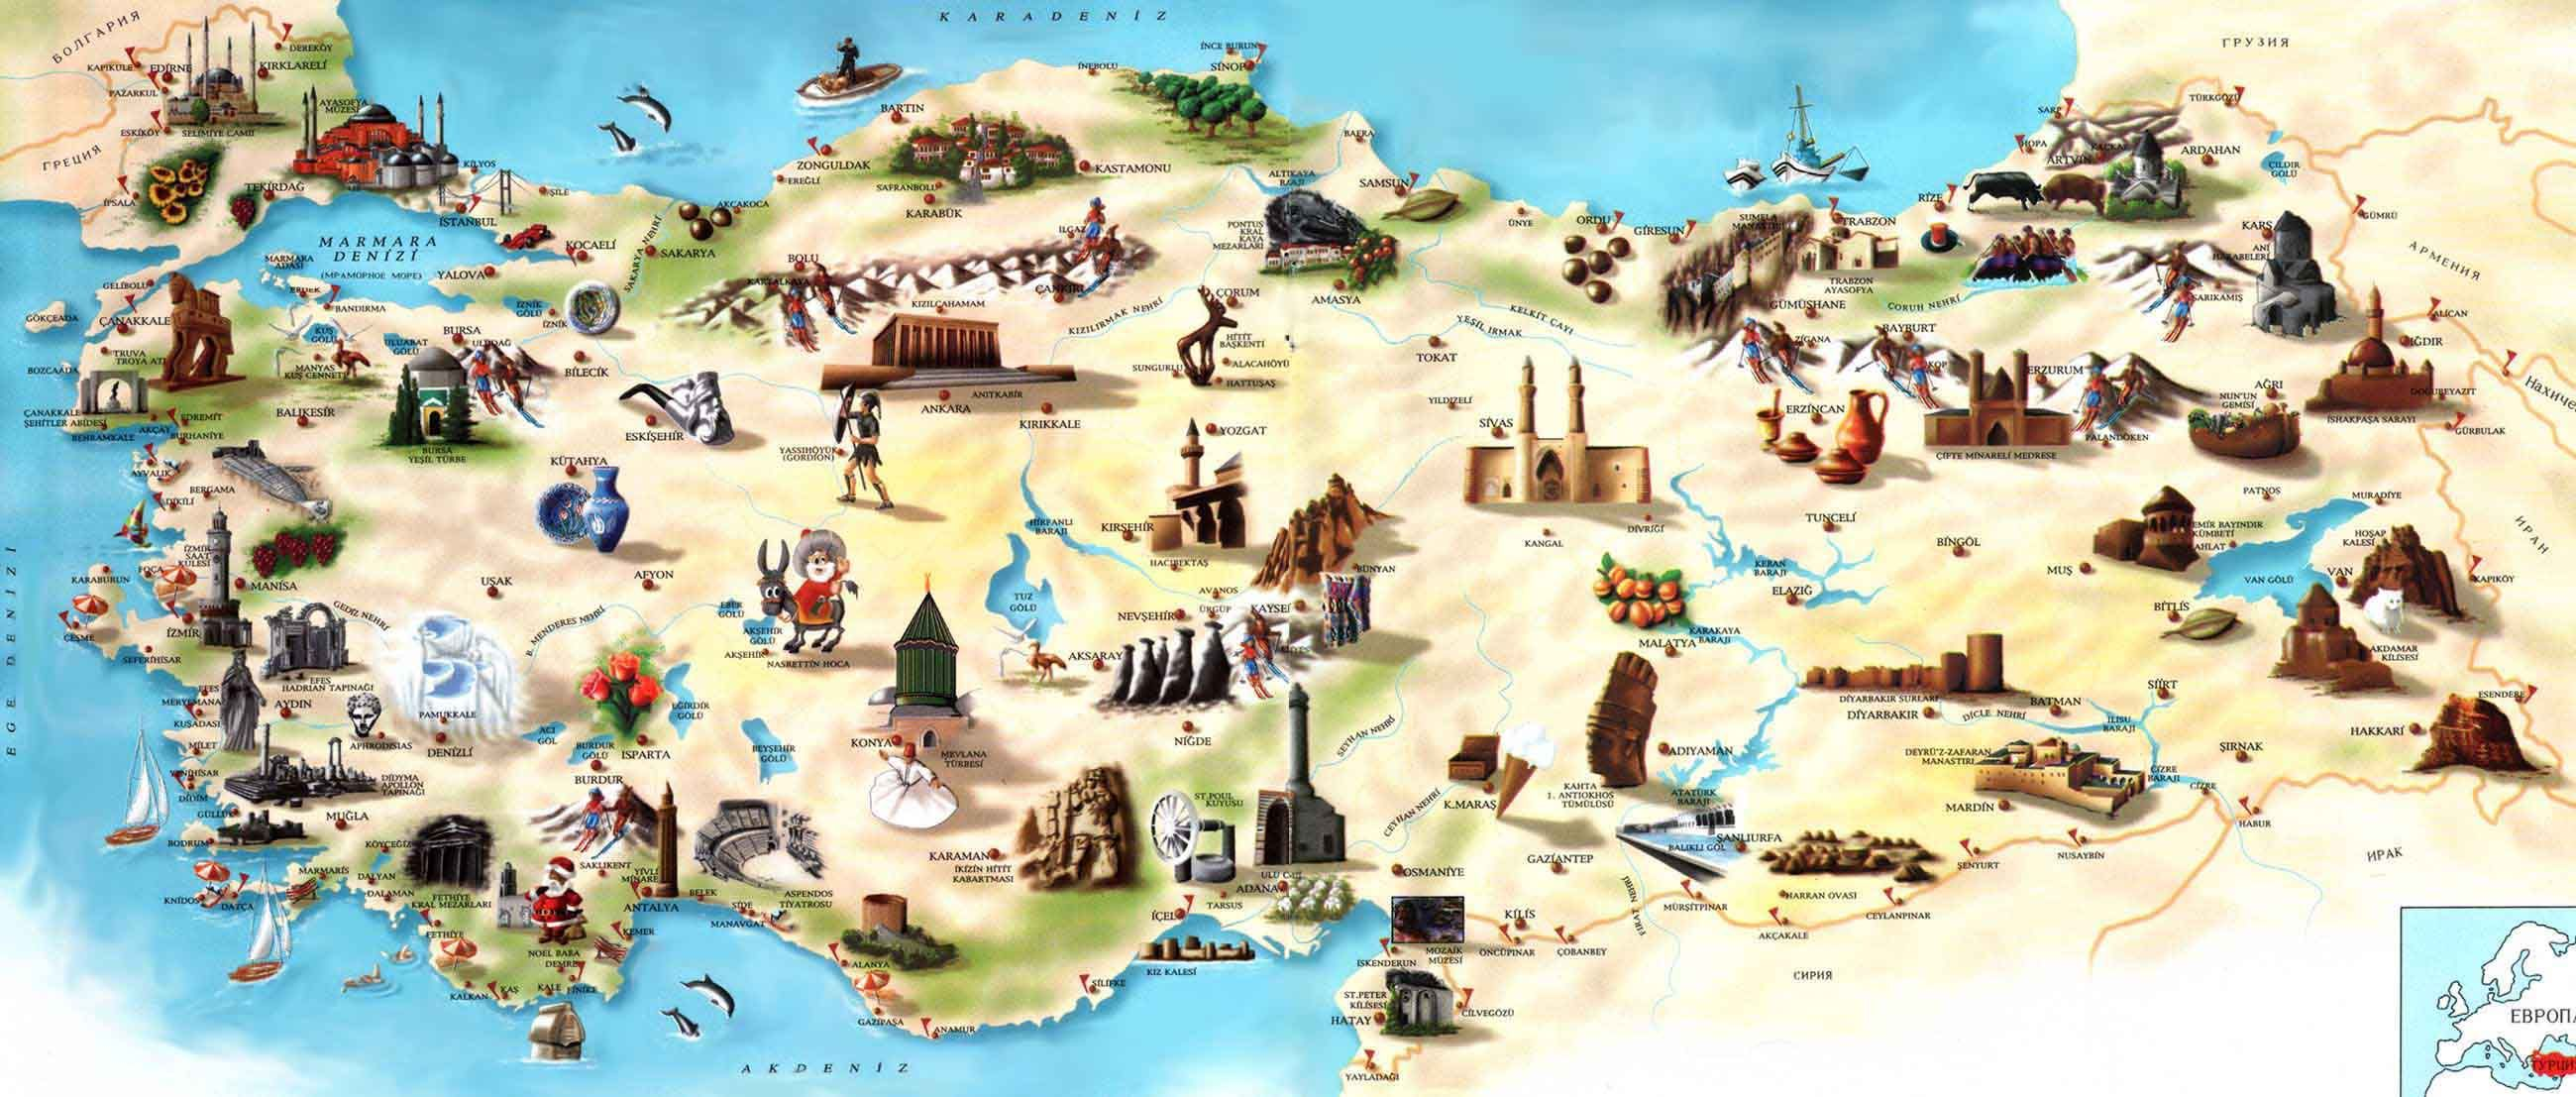 Turkey Tourist Map Turkey Mappery Turizm Cografya Goller